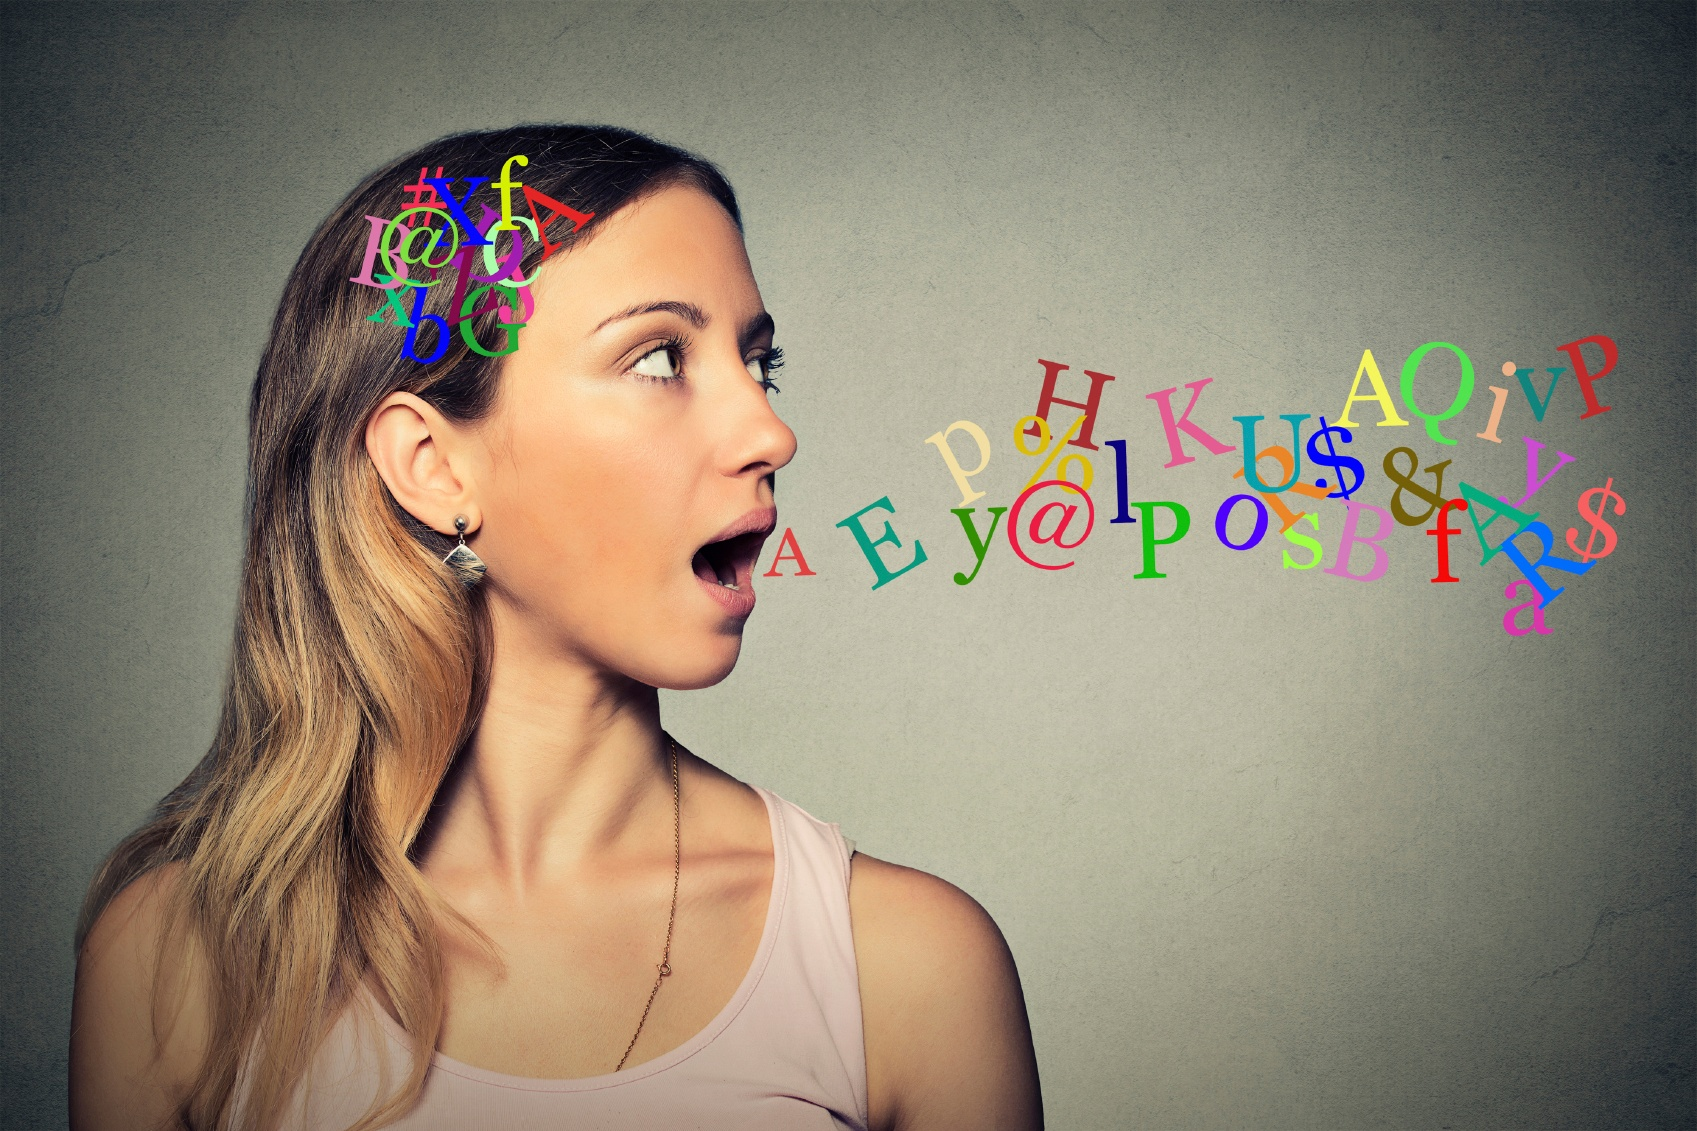 girl's-head-releasing-colorful-letters-as-she-speaks